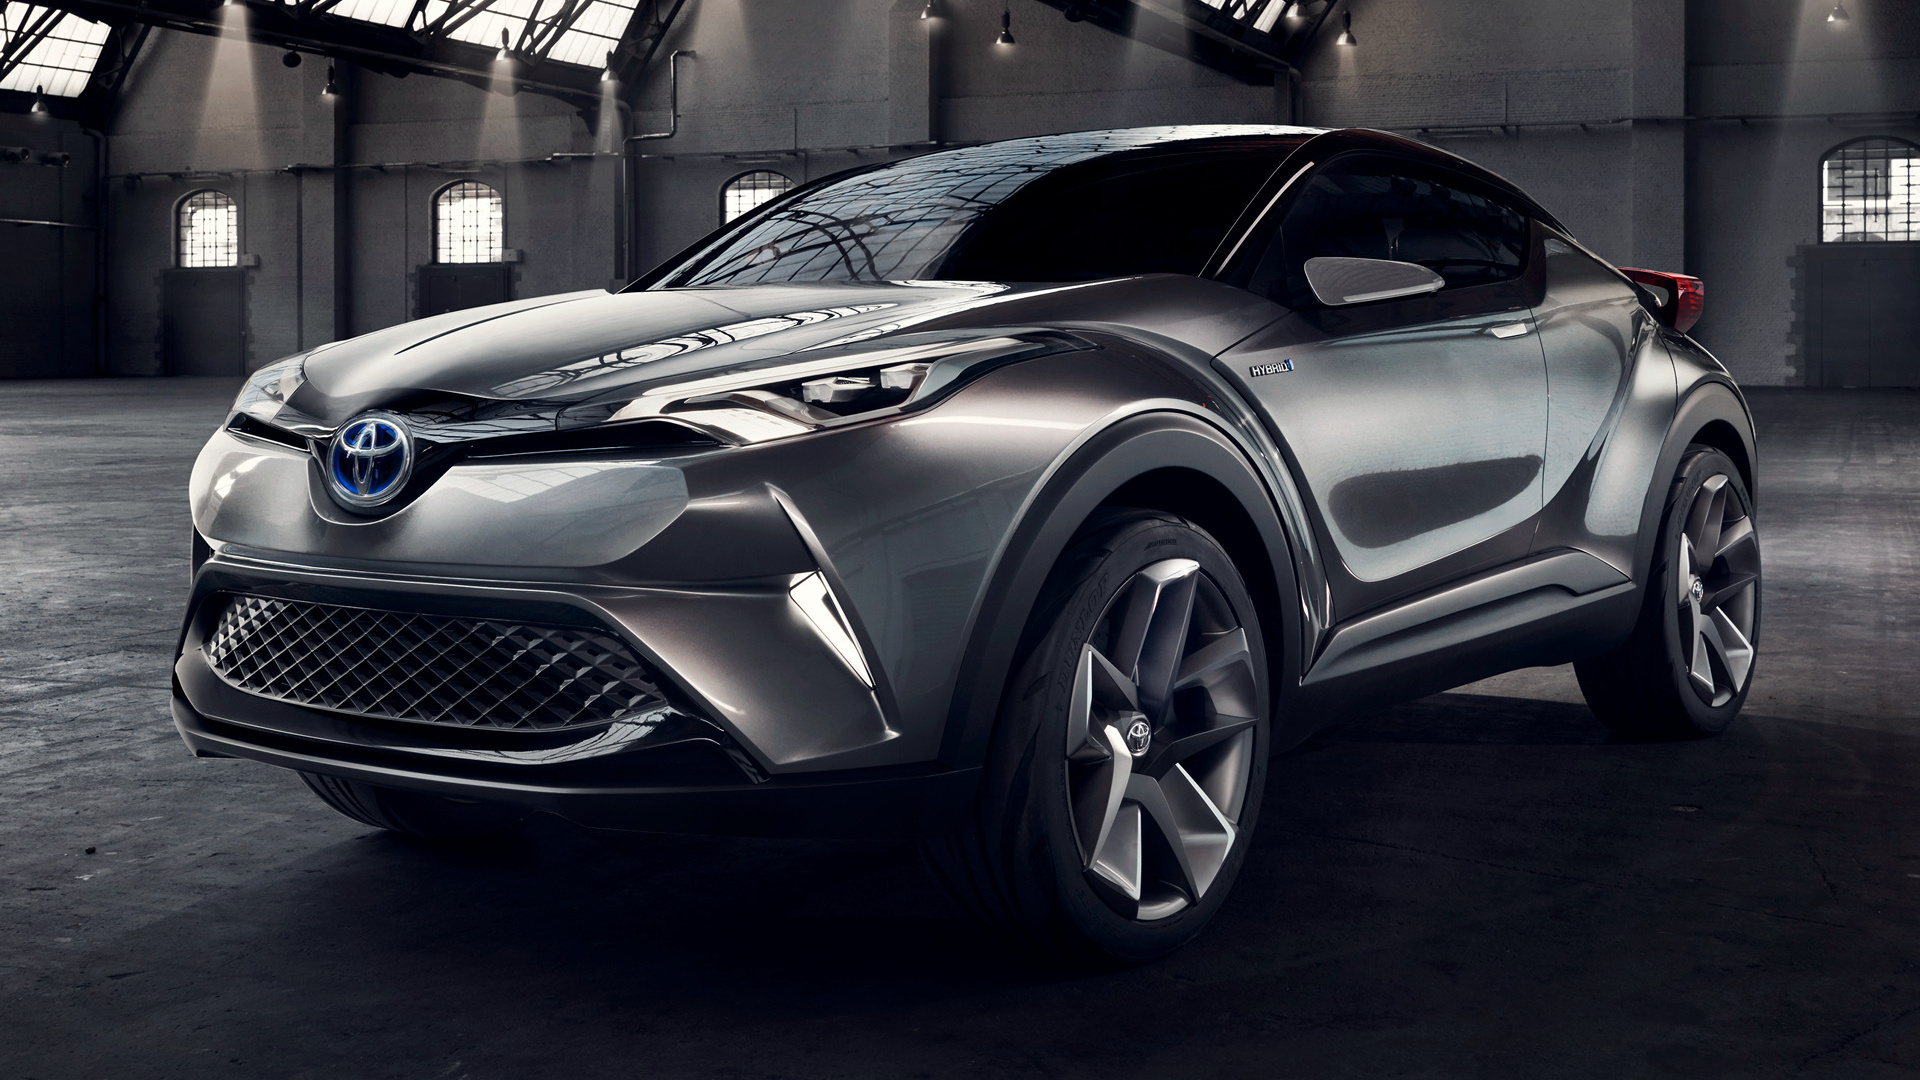 2015 Toyota C-HR Concept - Wallpapers and HD Images | Car ...